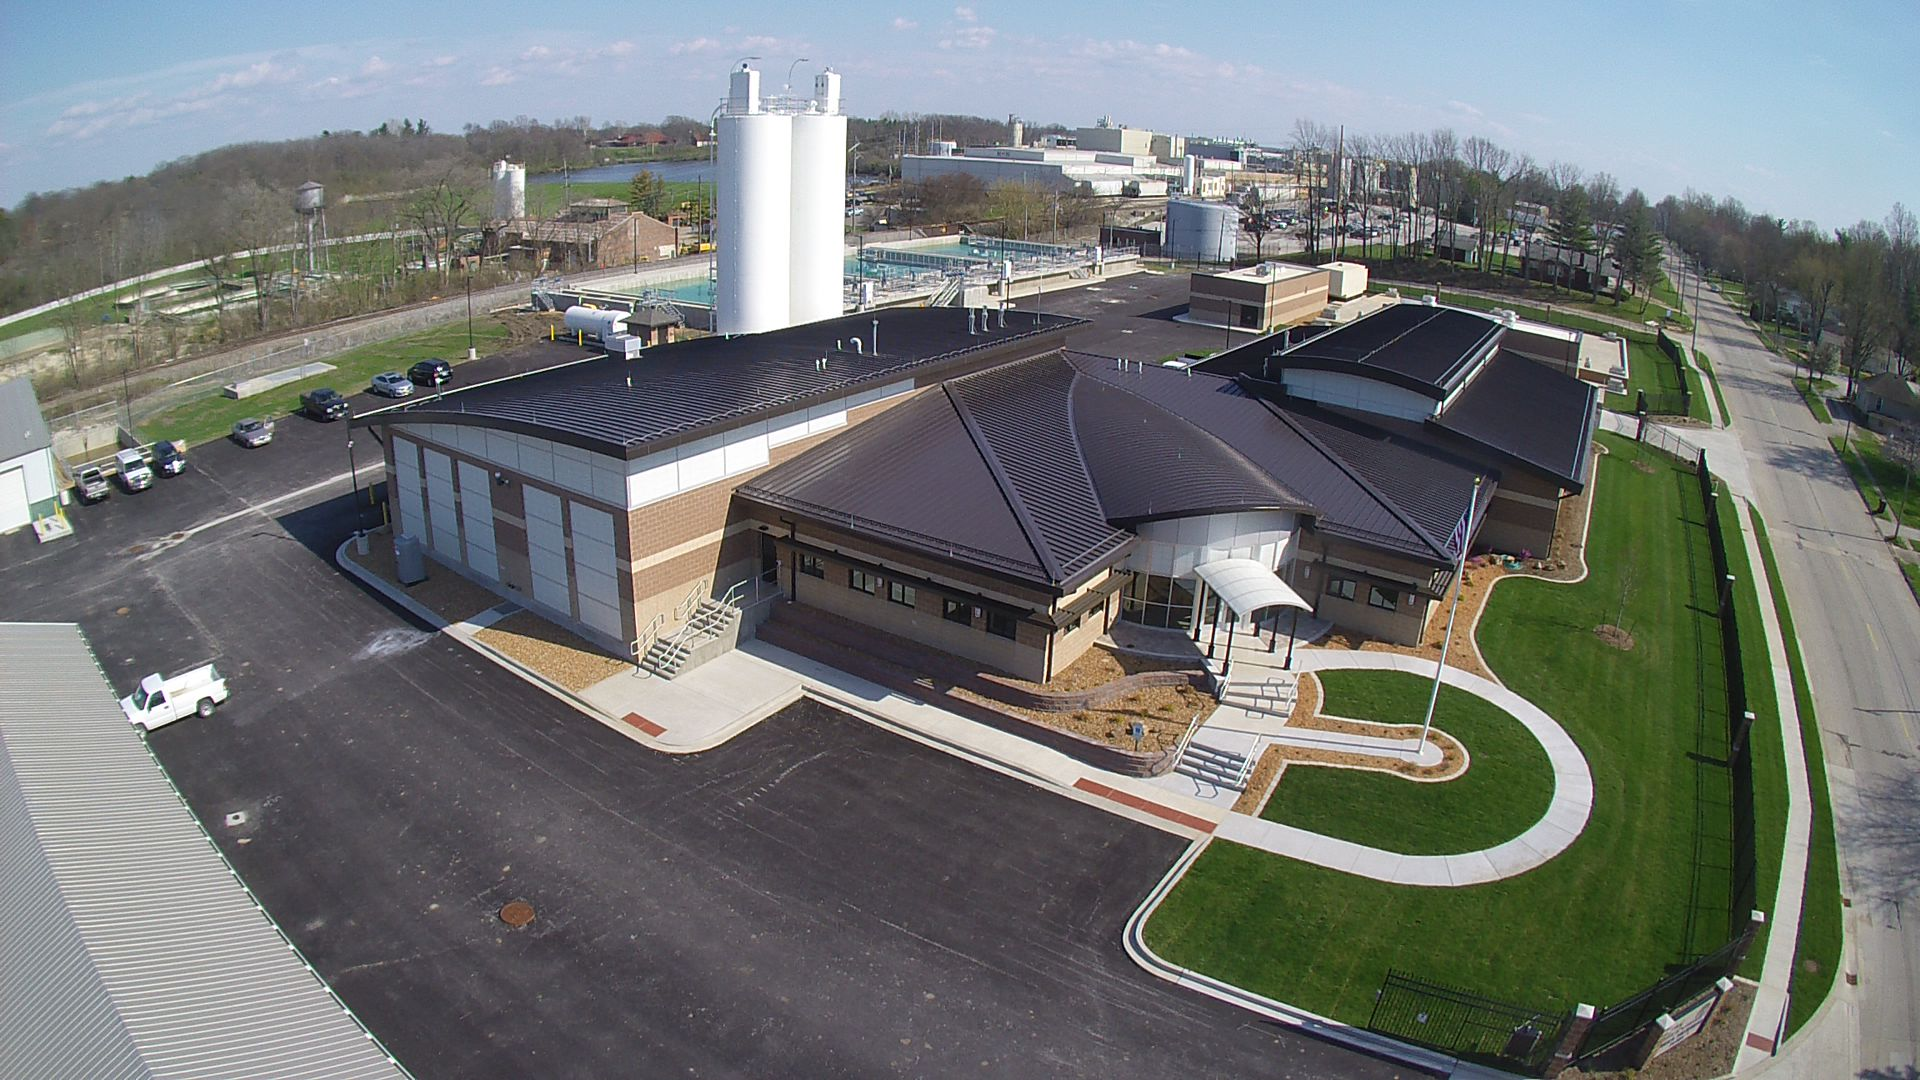 Aerial view of the new Water Treatment Plant